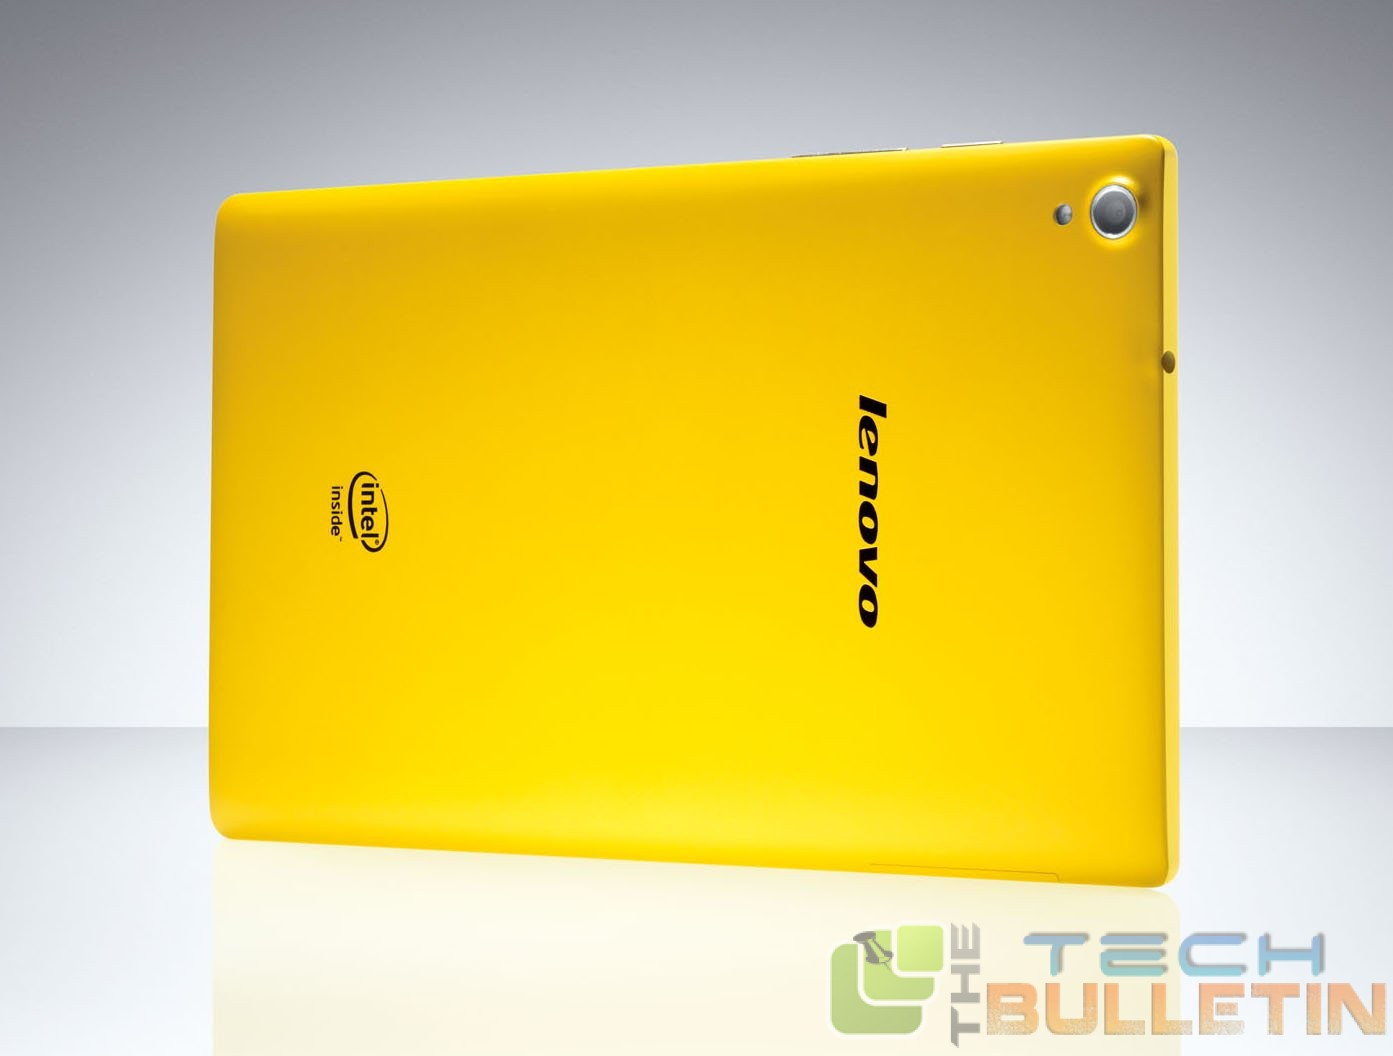 Lenovo launched 8 inch Tab S8 tablet, first Android tablet powered by Intel Atom processor at IFA, consumer electronics event, 2014, at Berlin. Check out here for more details.